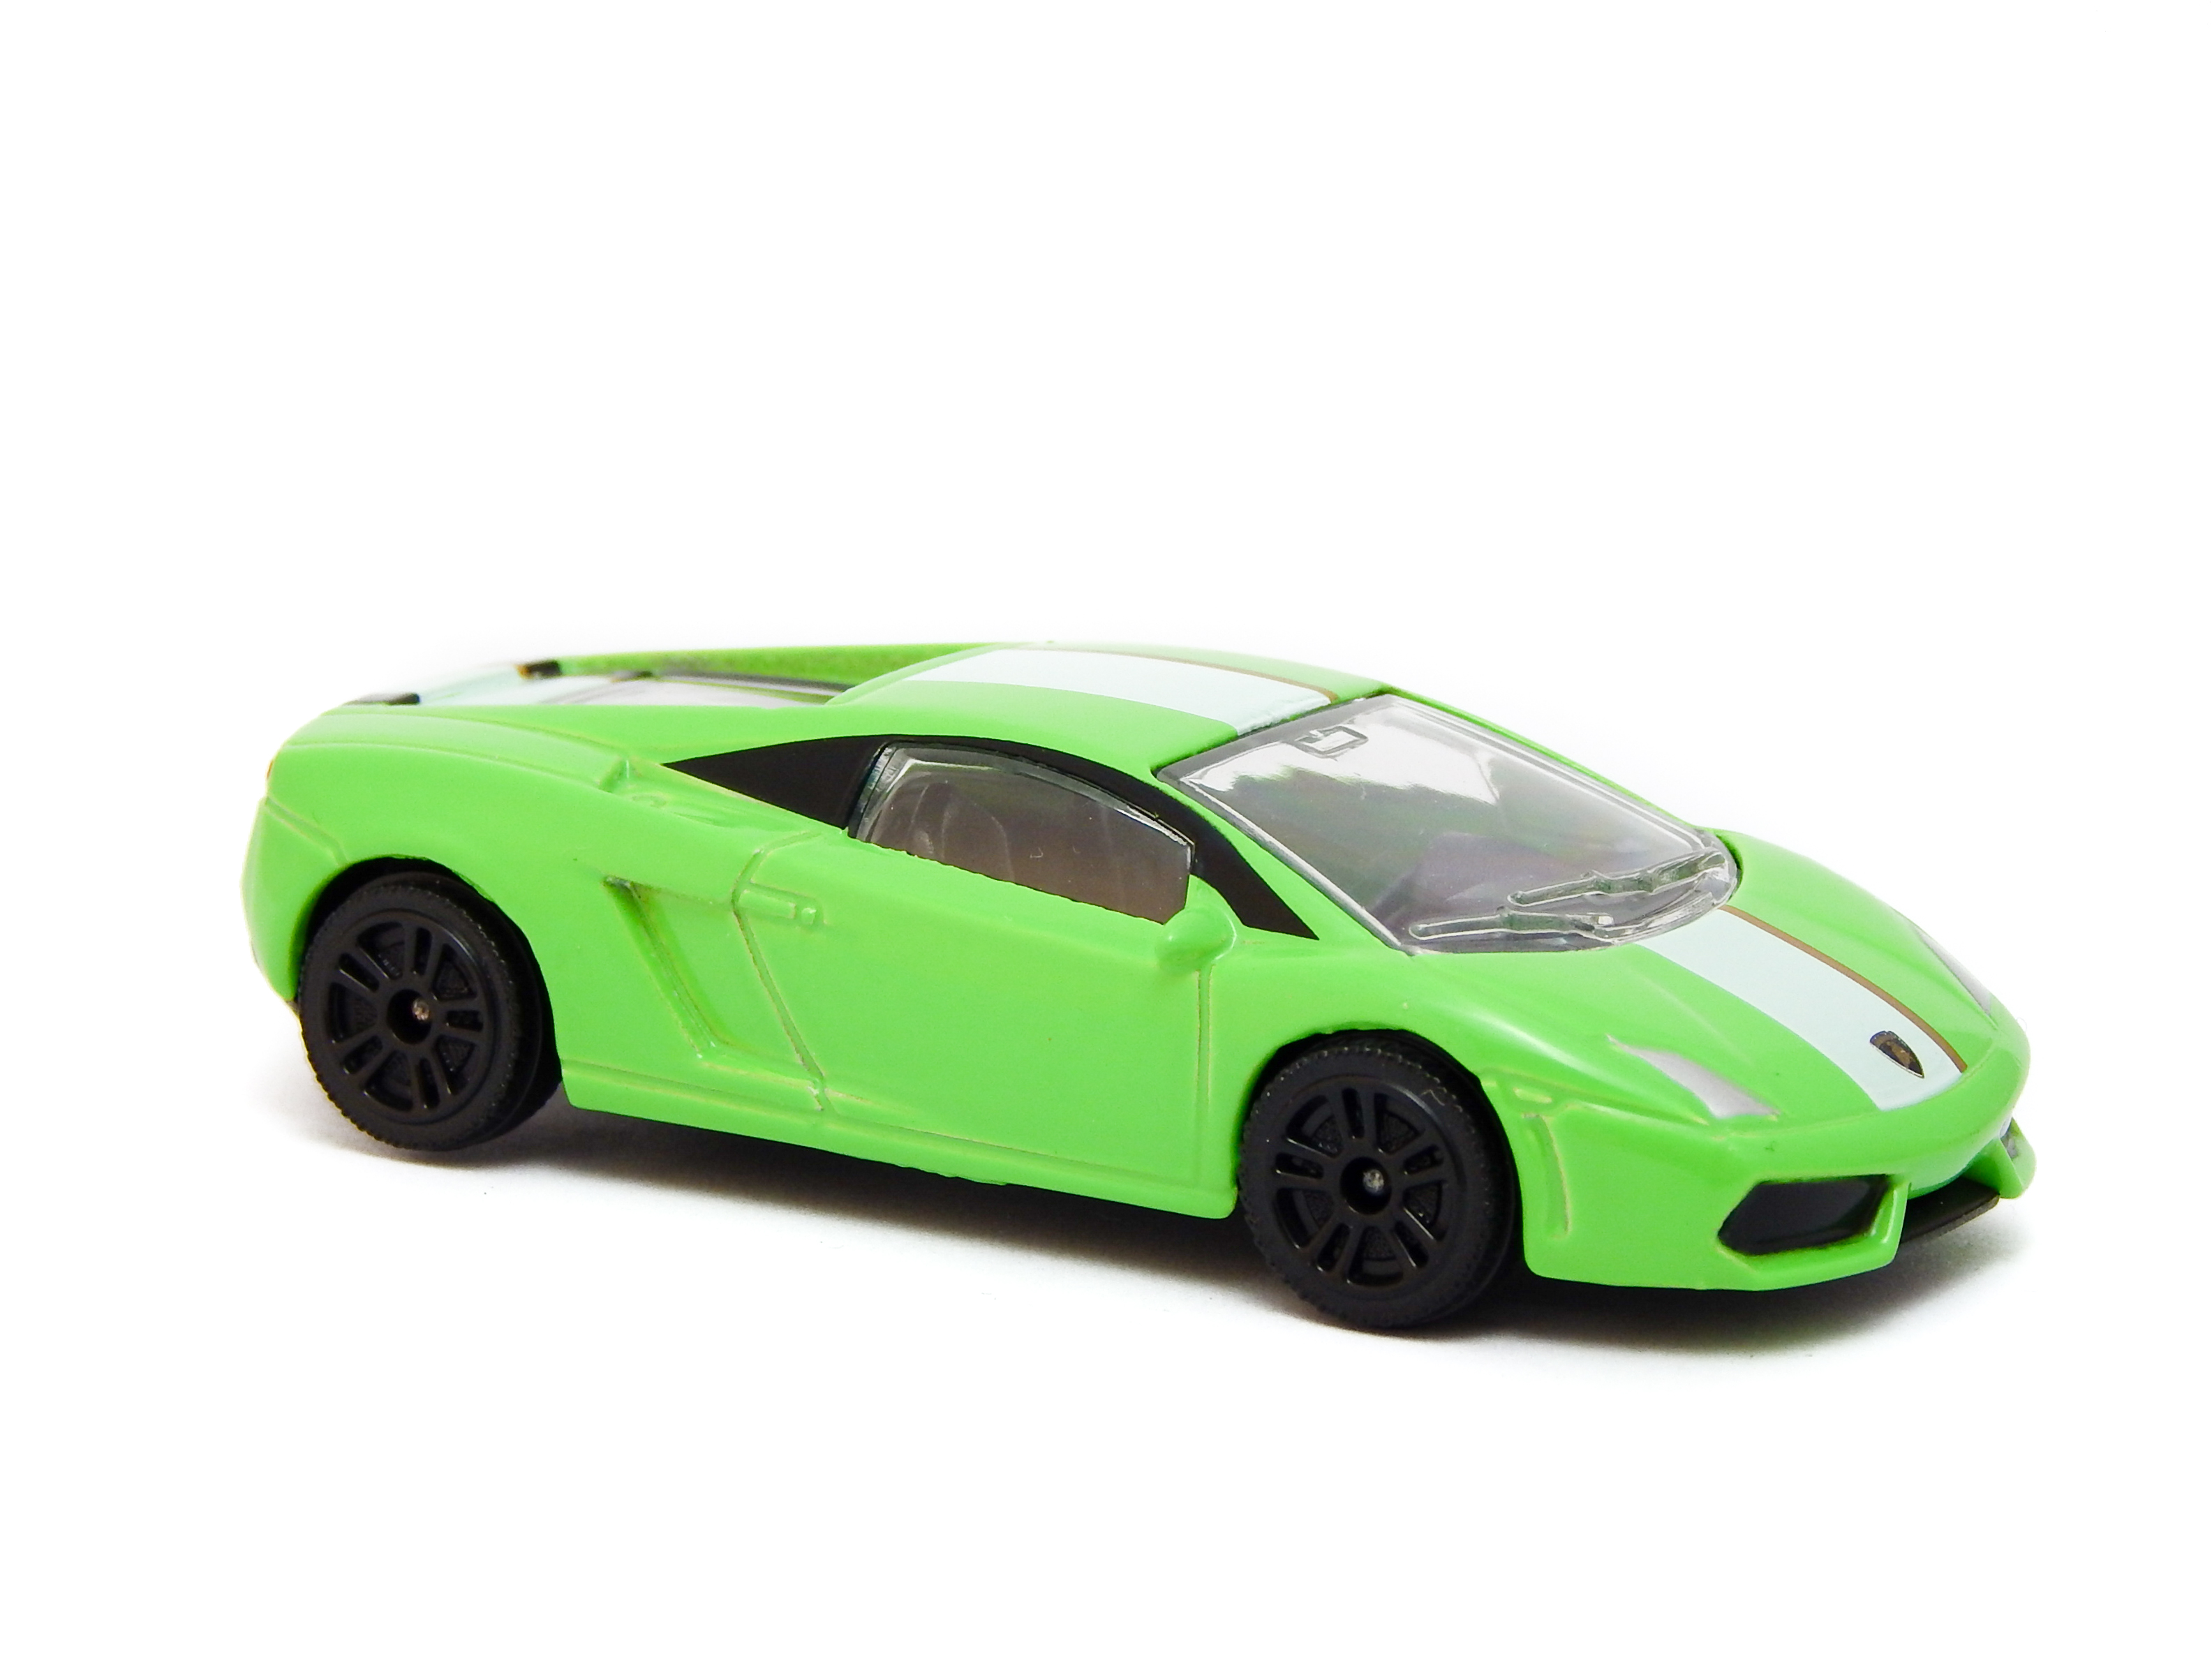 Lamborghini Gallardo Lp550 2 Valentino Balboni The Hobbydb Marketplace